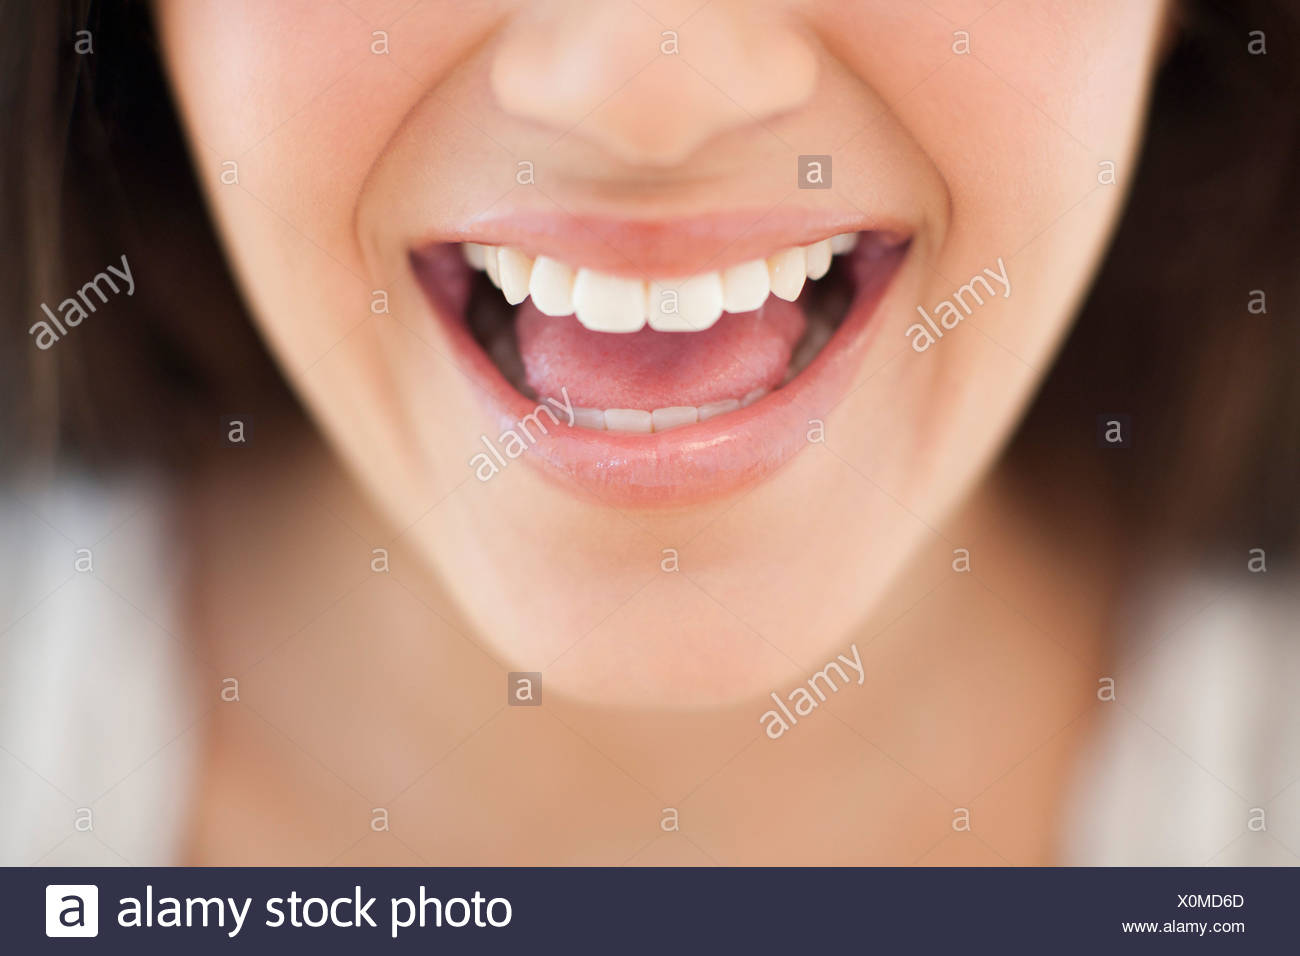 Healthy smile - Stock Image